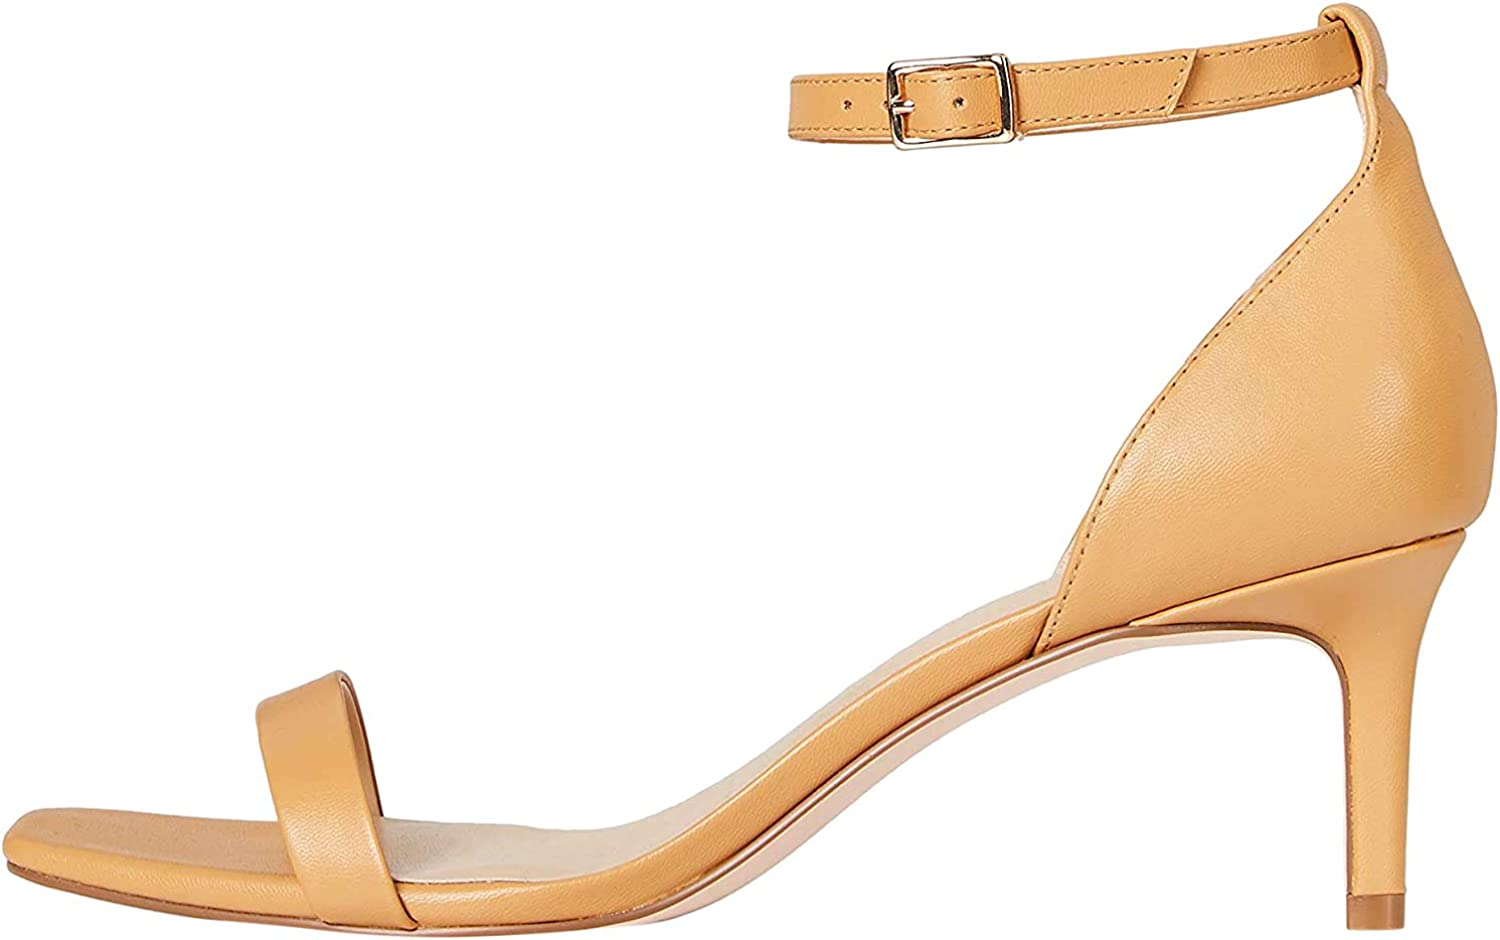 find. Women's Mid-Heel Strappy Sandal Courts